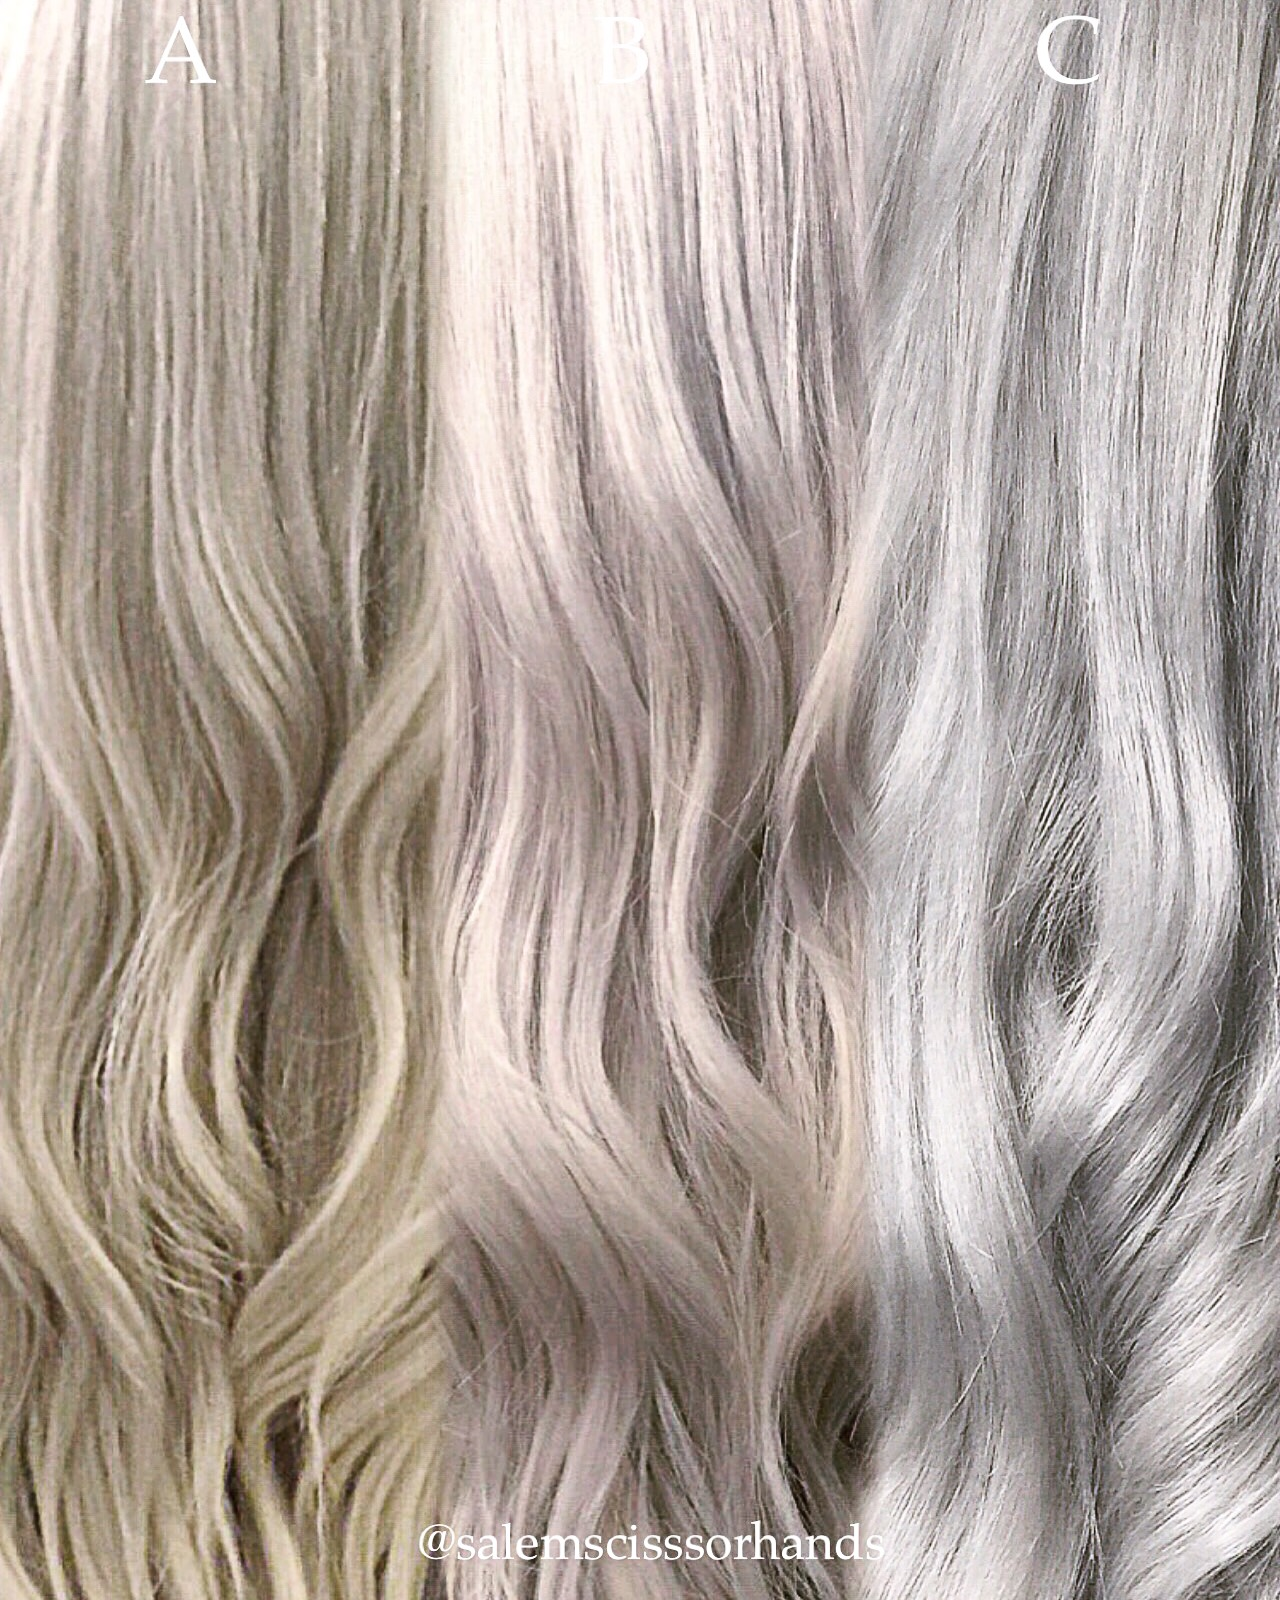 Shades Of Blonde...The Journey To Silver